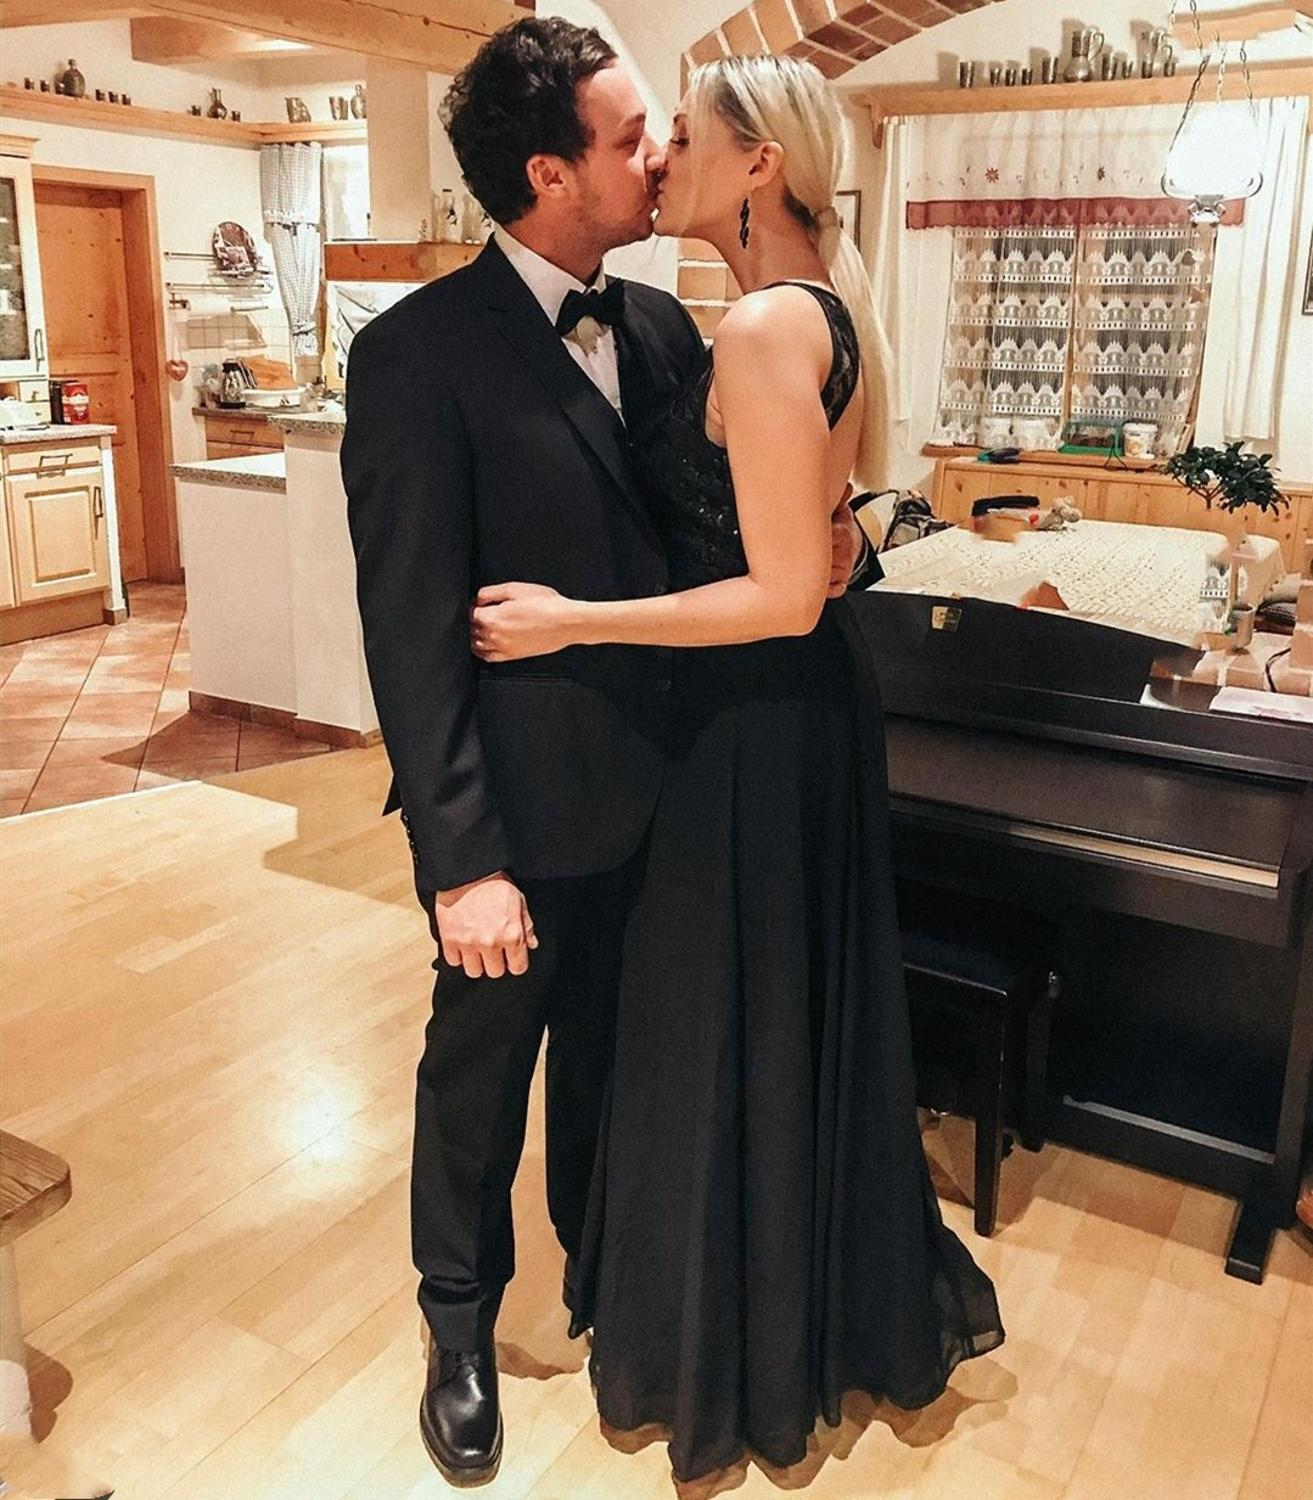 Lorie 2020 Black Evening Dress Long Lace Chiffon Elegant Special Occasion Gowns Sleeveless A-line Formal Party Prom Dresses